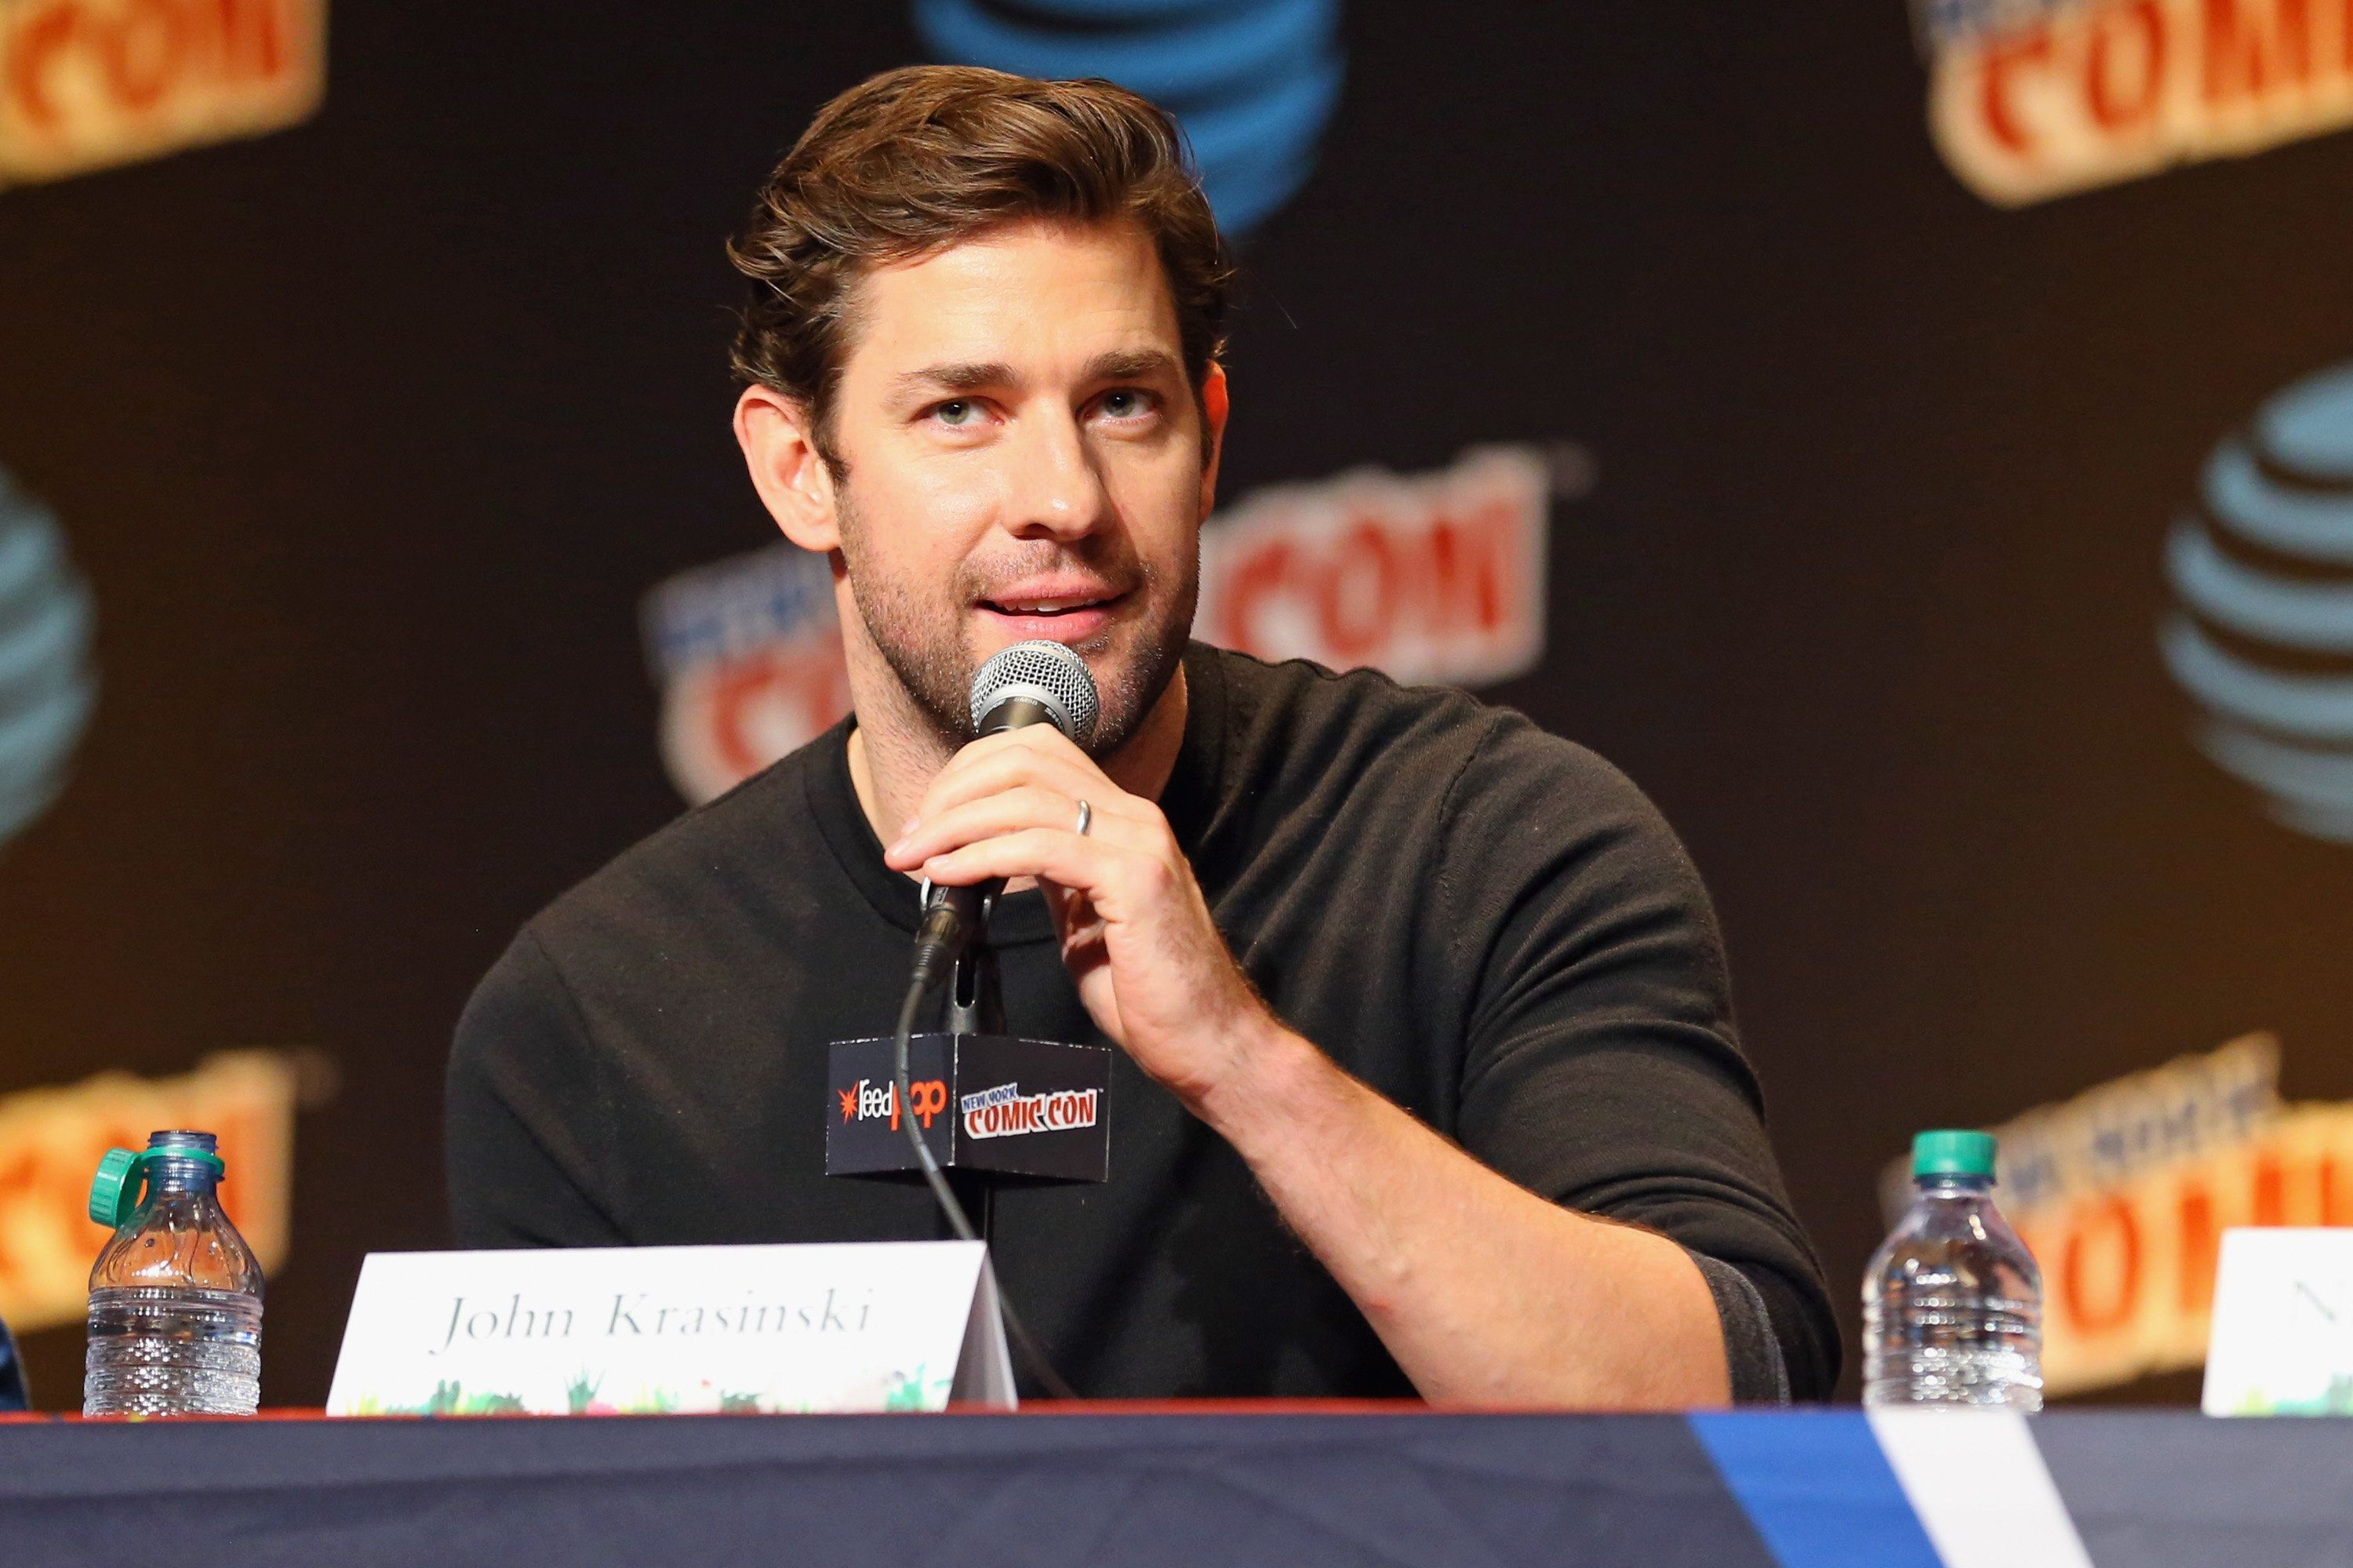 NEW YORK, NY - OCTOBER 07:  Actor John Krasinski speaks onstage during the Adult Swim: 'Dream Corp. LLC' panel at New York Comic Con on October 7, 2016 in New York City.  (Photo by Paul Zimmerman/Getty Images for Turner)